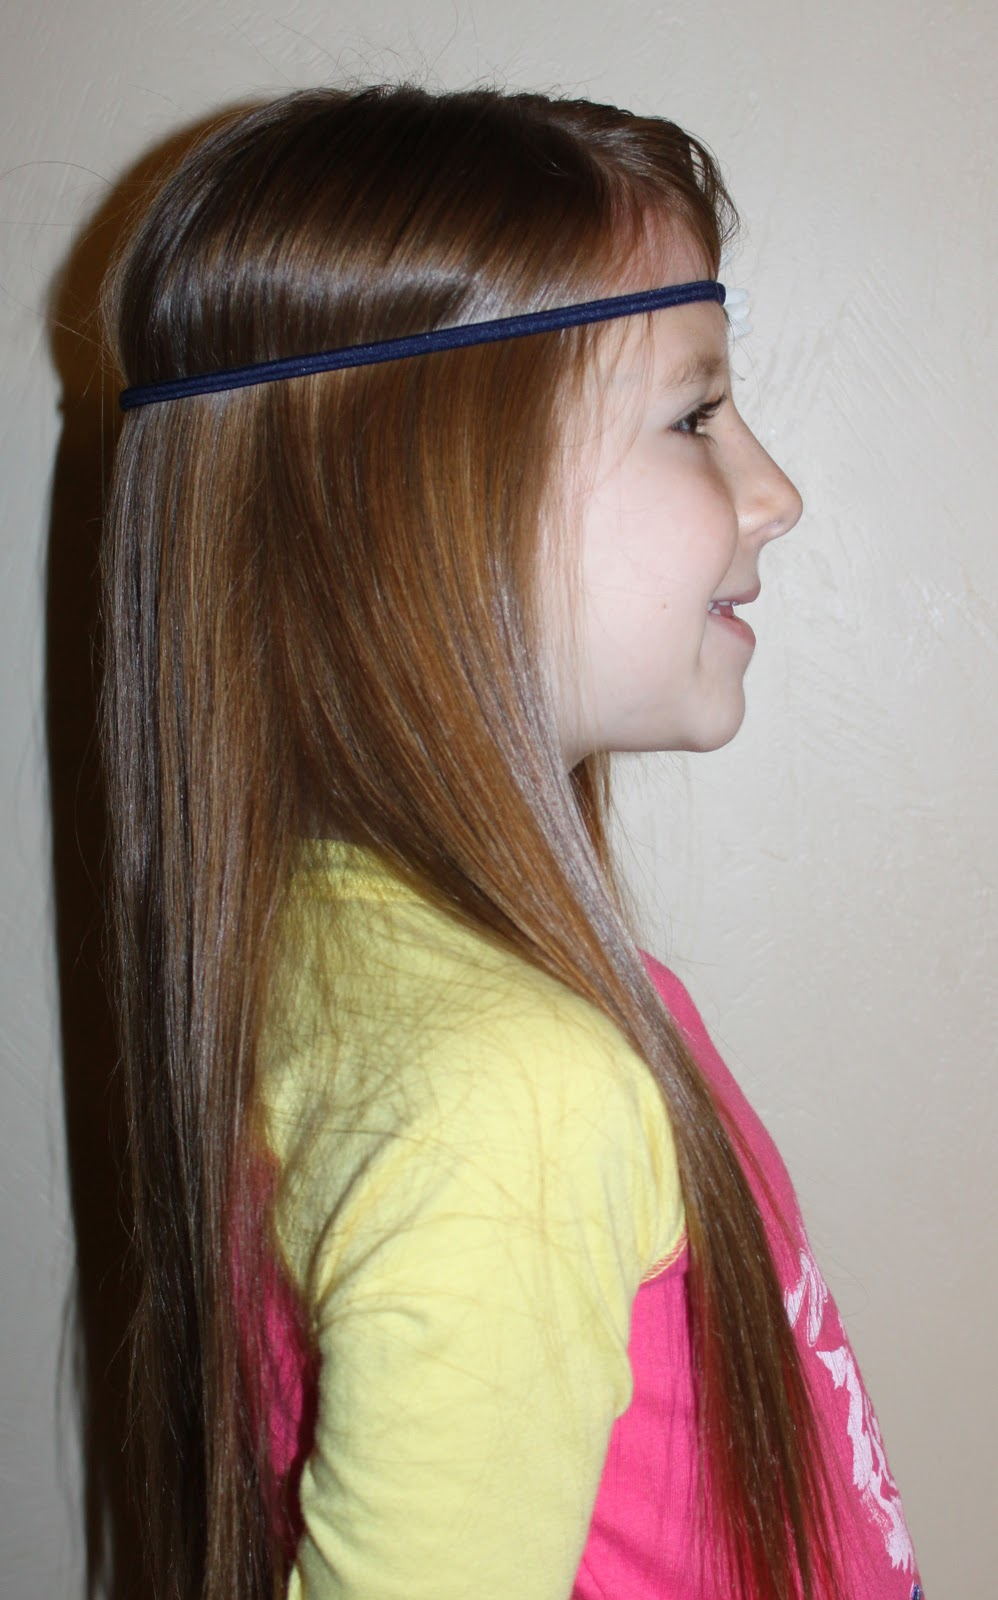 Hairstyles For Girls The Wright Hair Hippie Headband